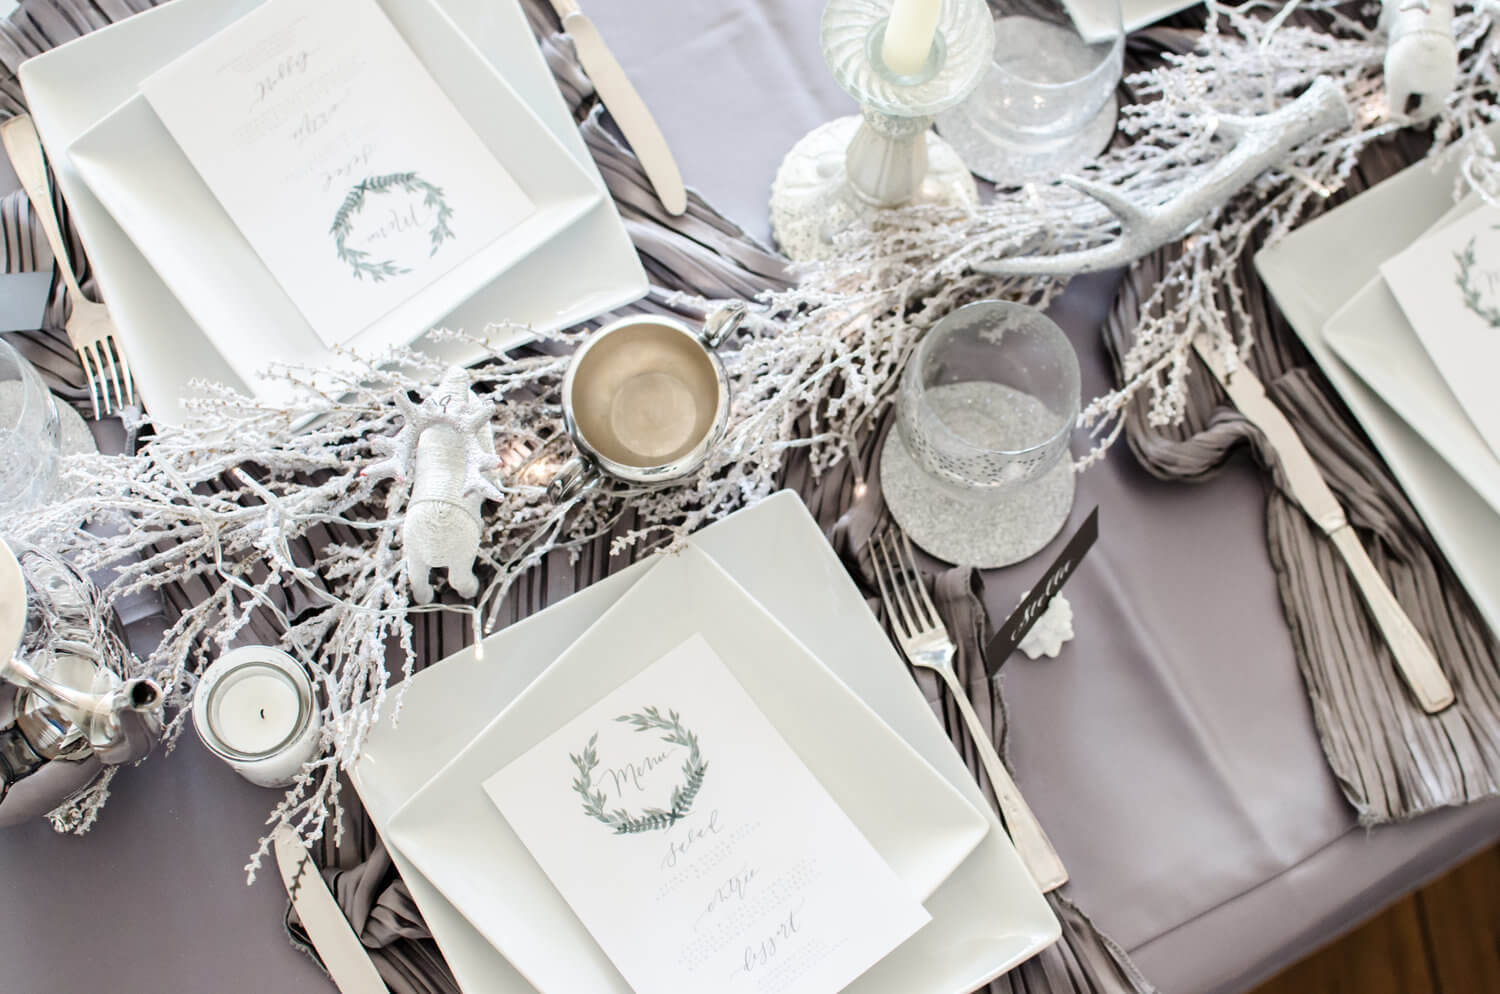 Pretty white and grey tablescape for a winter party. Table runner created with polar bears, antlers and white branches. See more ideas from this Winter Wonderland themed Bridal Shower Inspiration created by Mint Event Design www.minteventdesign.com #winterweddingideas #weddingwedding #bridalshowerideas #winterwonderland #tablescapes #tablesettings